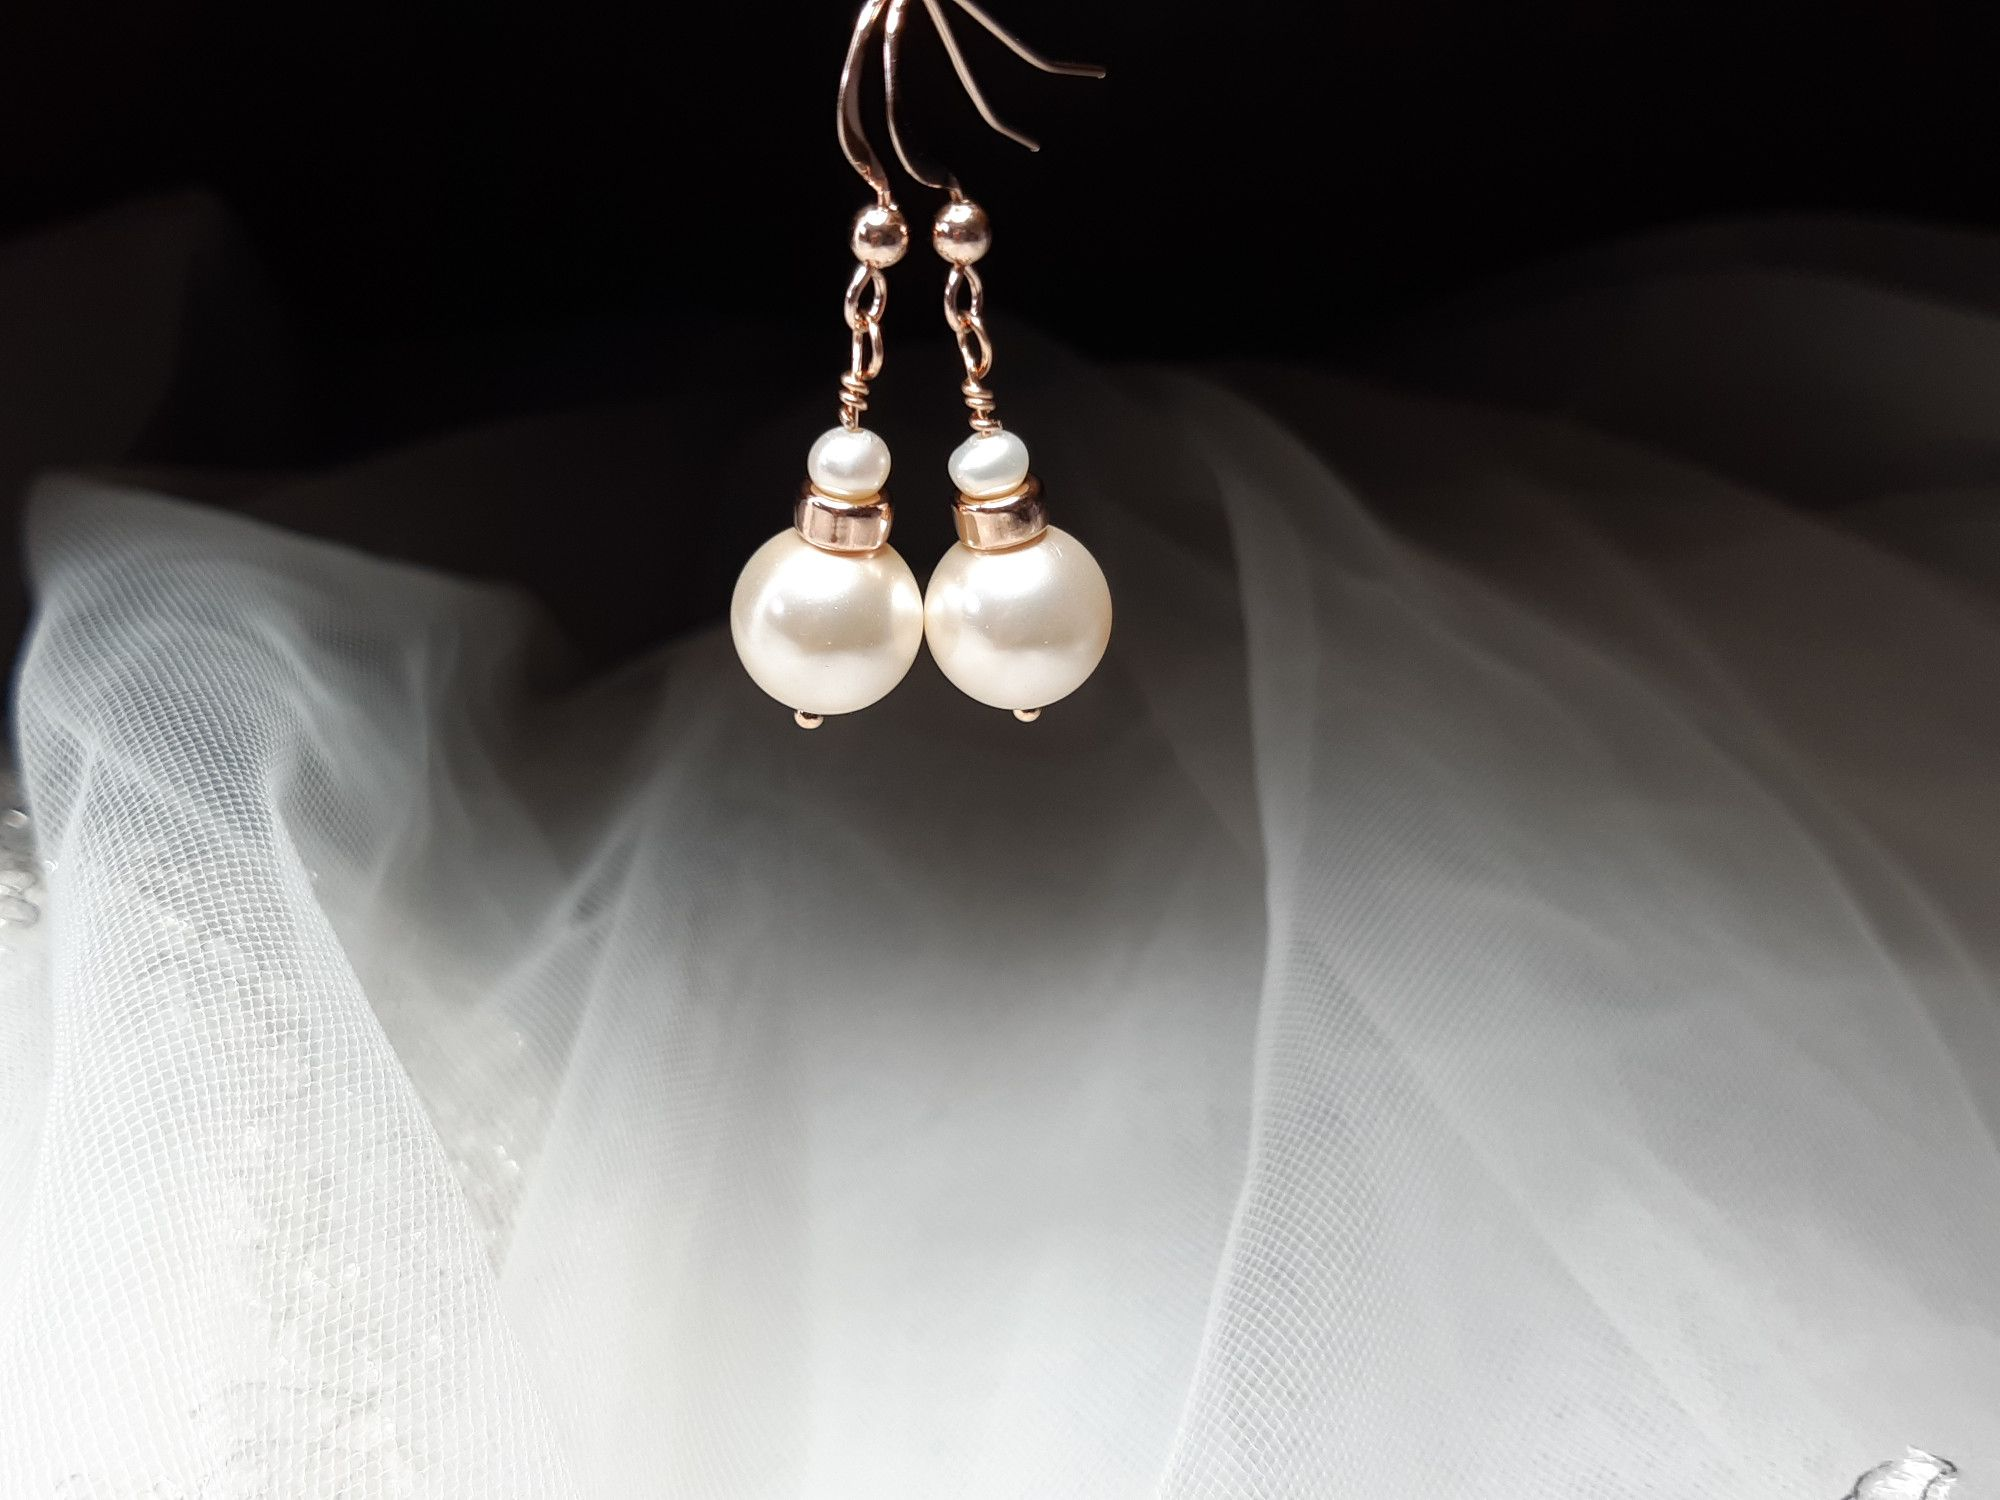 Occasion-bridal-wedding-pearl earrings with rose gold-6.jpg